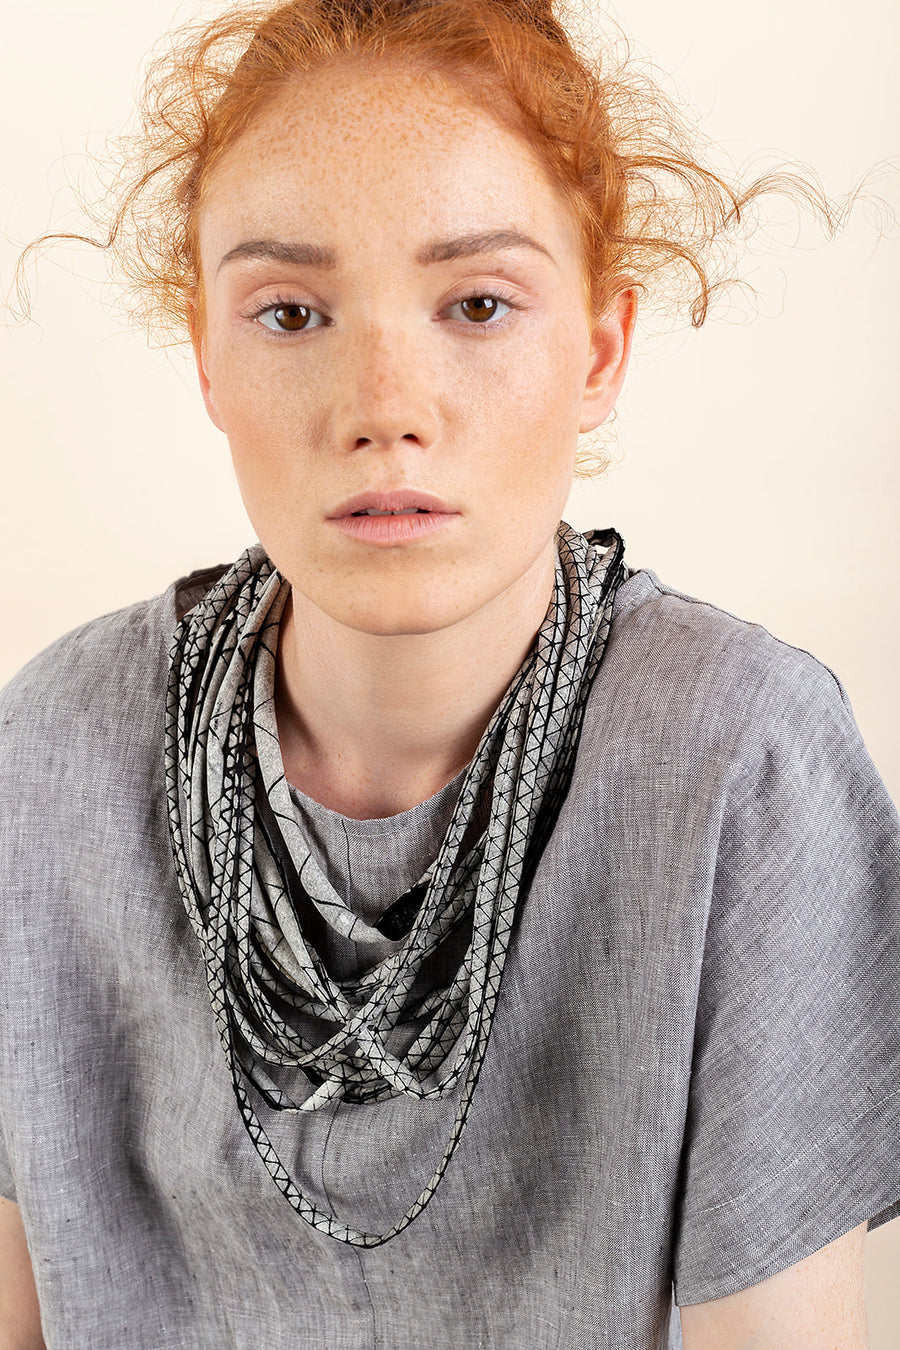 Femi multi-stranded necklace / B&W